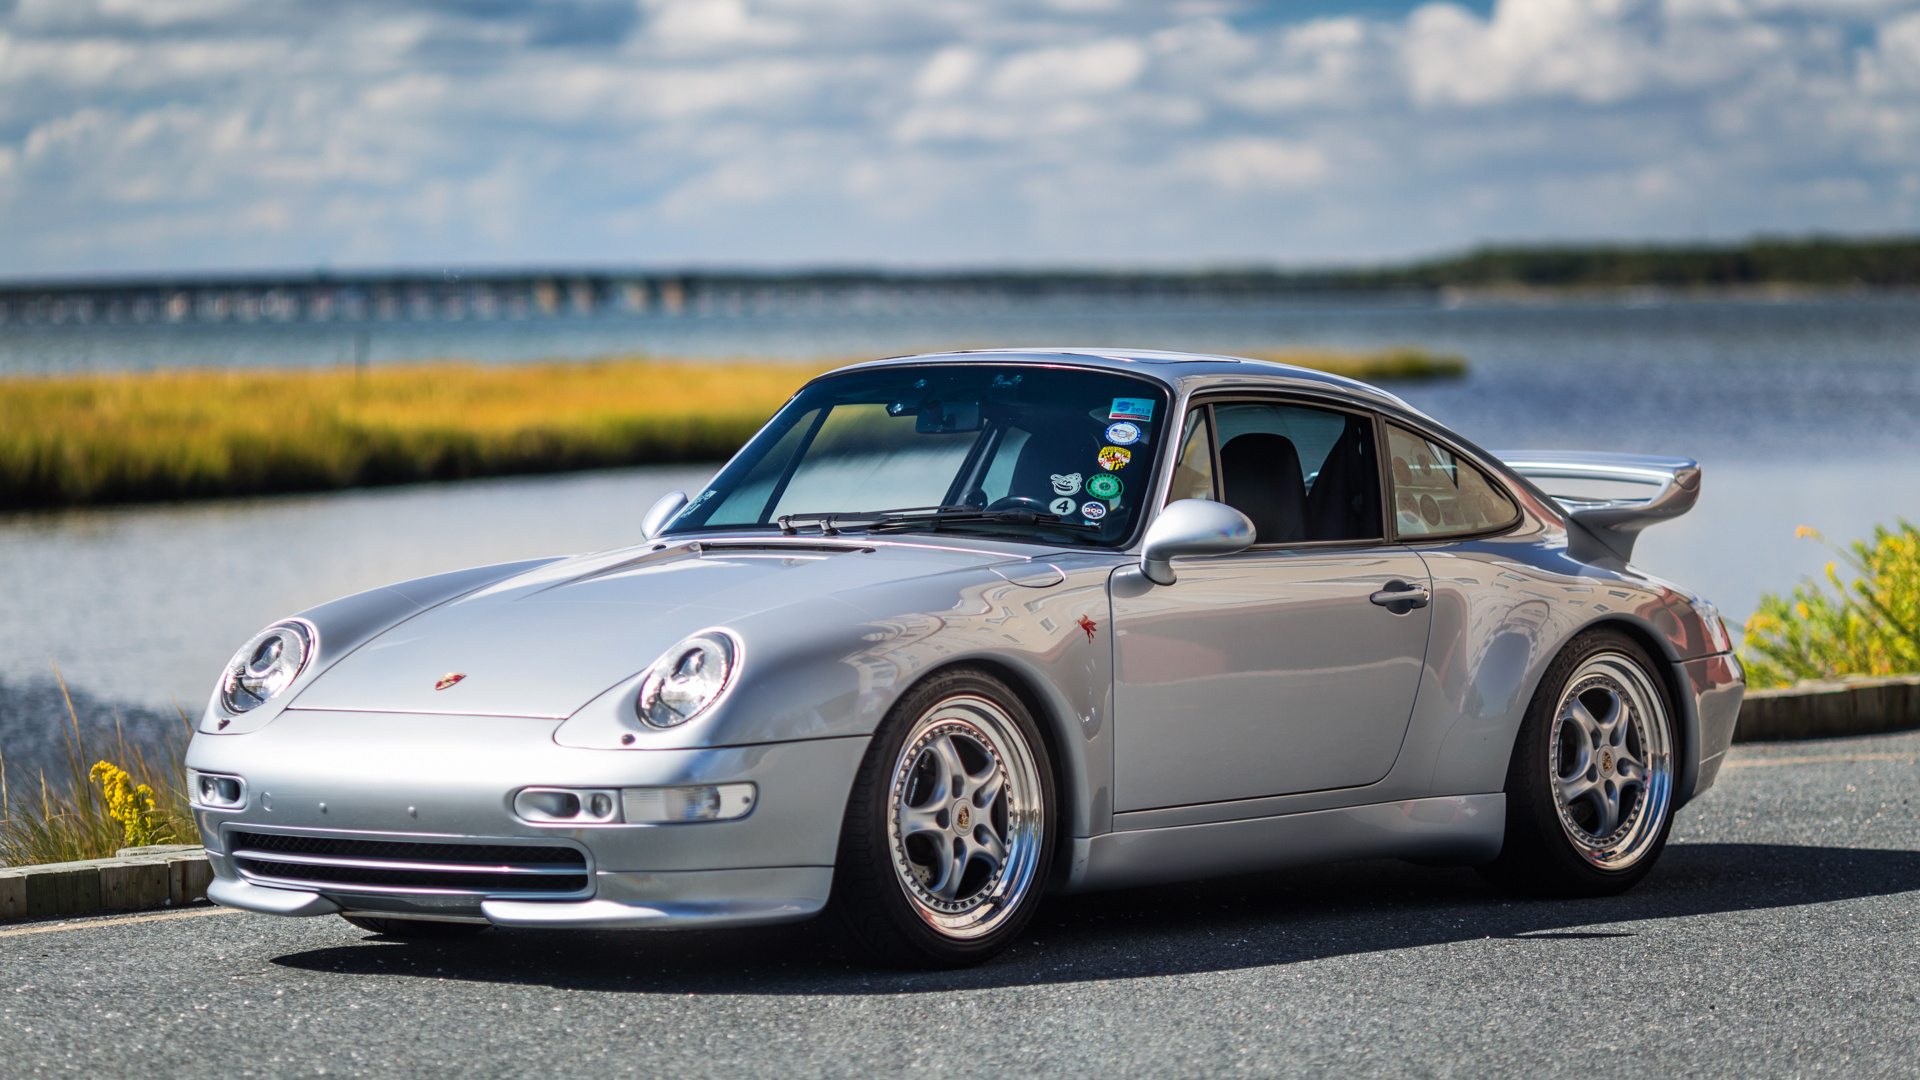 Porsche 911 Wallpapers Pictures Images